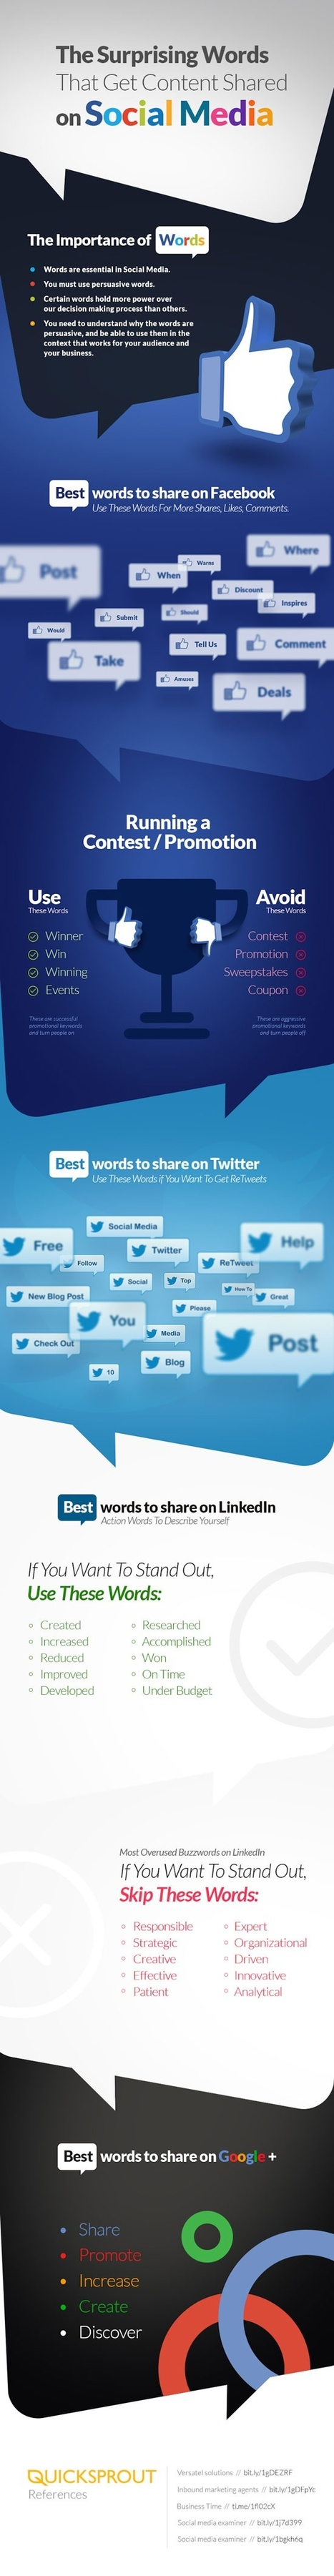 Infographic: Get More Social Media Traffic by Use These Surprising Words | Media and technology | Scoop.it